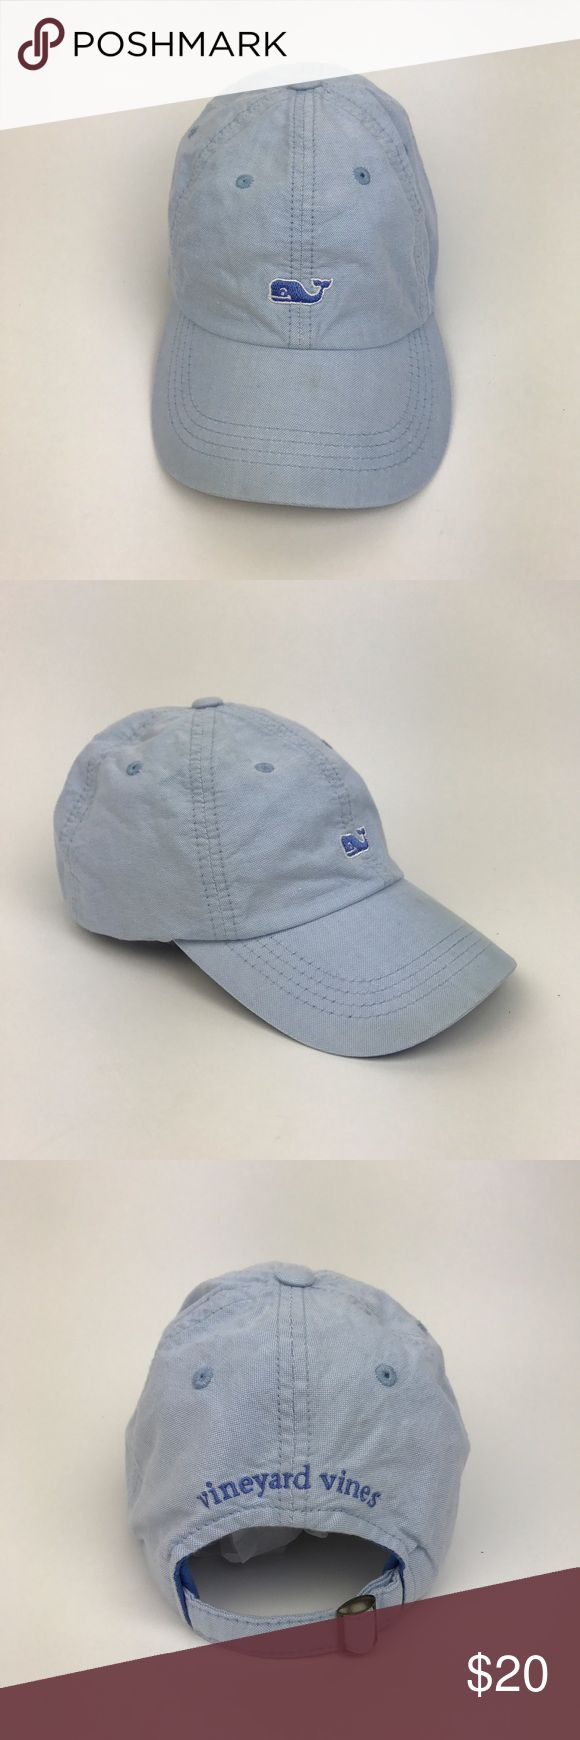 [Vineyard Vines] Whale Logo Baseball Hat Cap Blue Classic cotton baseball hat. Whale logo embroidery on front. Spell out logo on back. Adjustable strap. Curved Brim. Light blue.  🔹Condition: Good pre-owned condition. Small stain on top of Brim. Shown in close up photo. Hat has been washed and cleaned. Vineyard Vines Accessories Hats